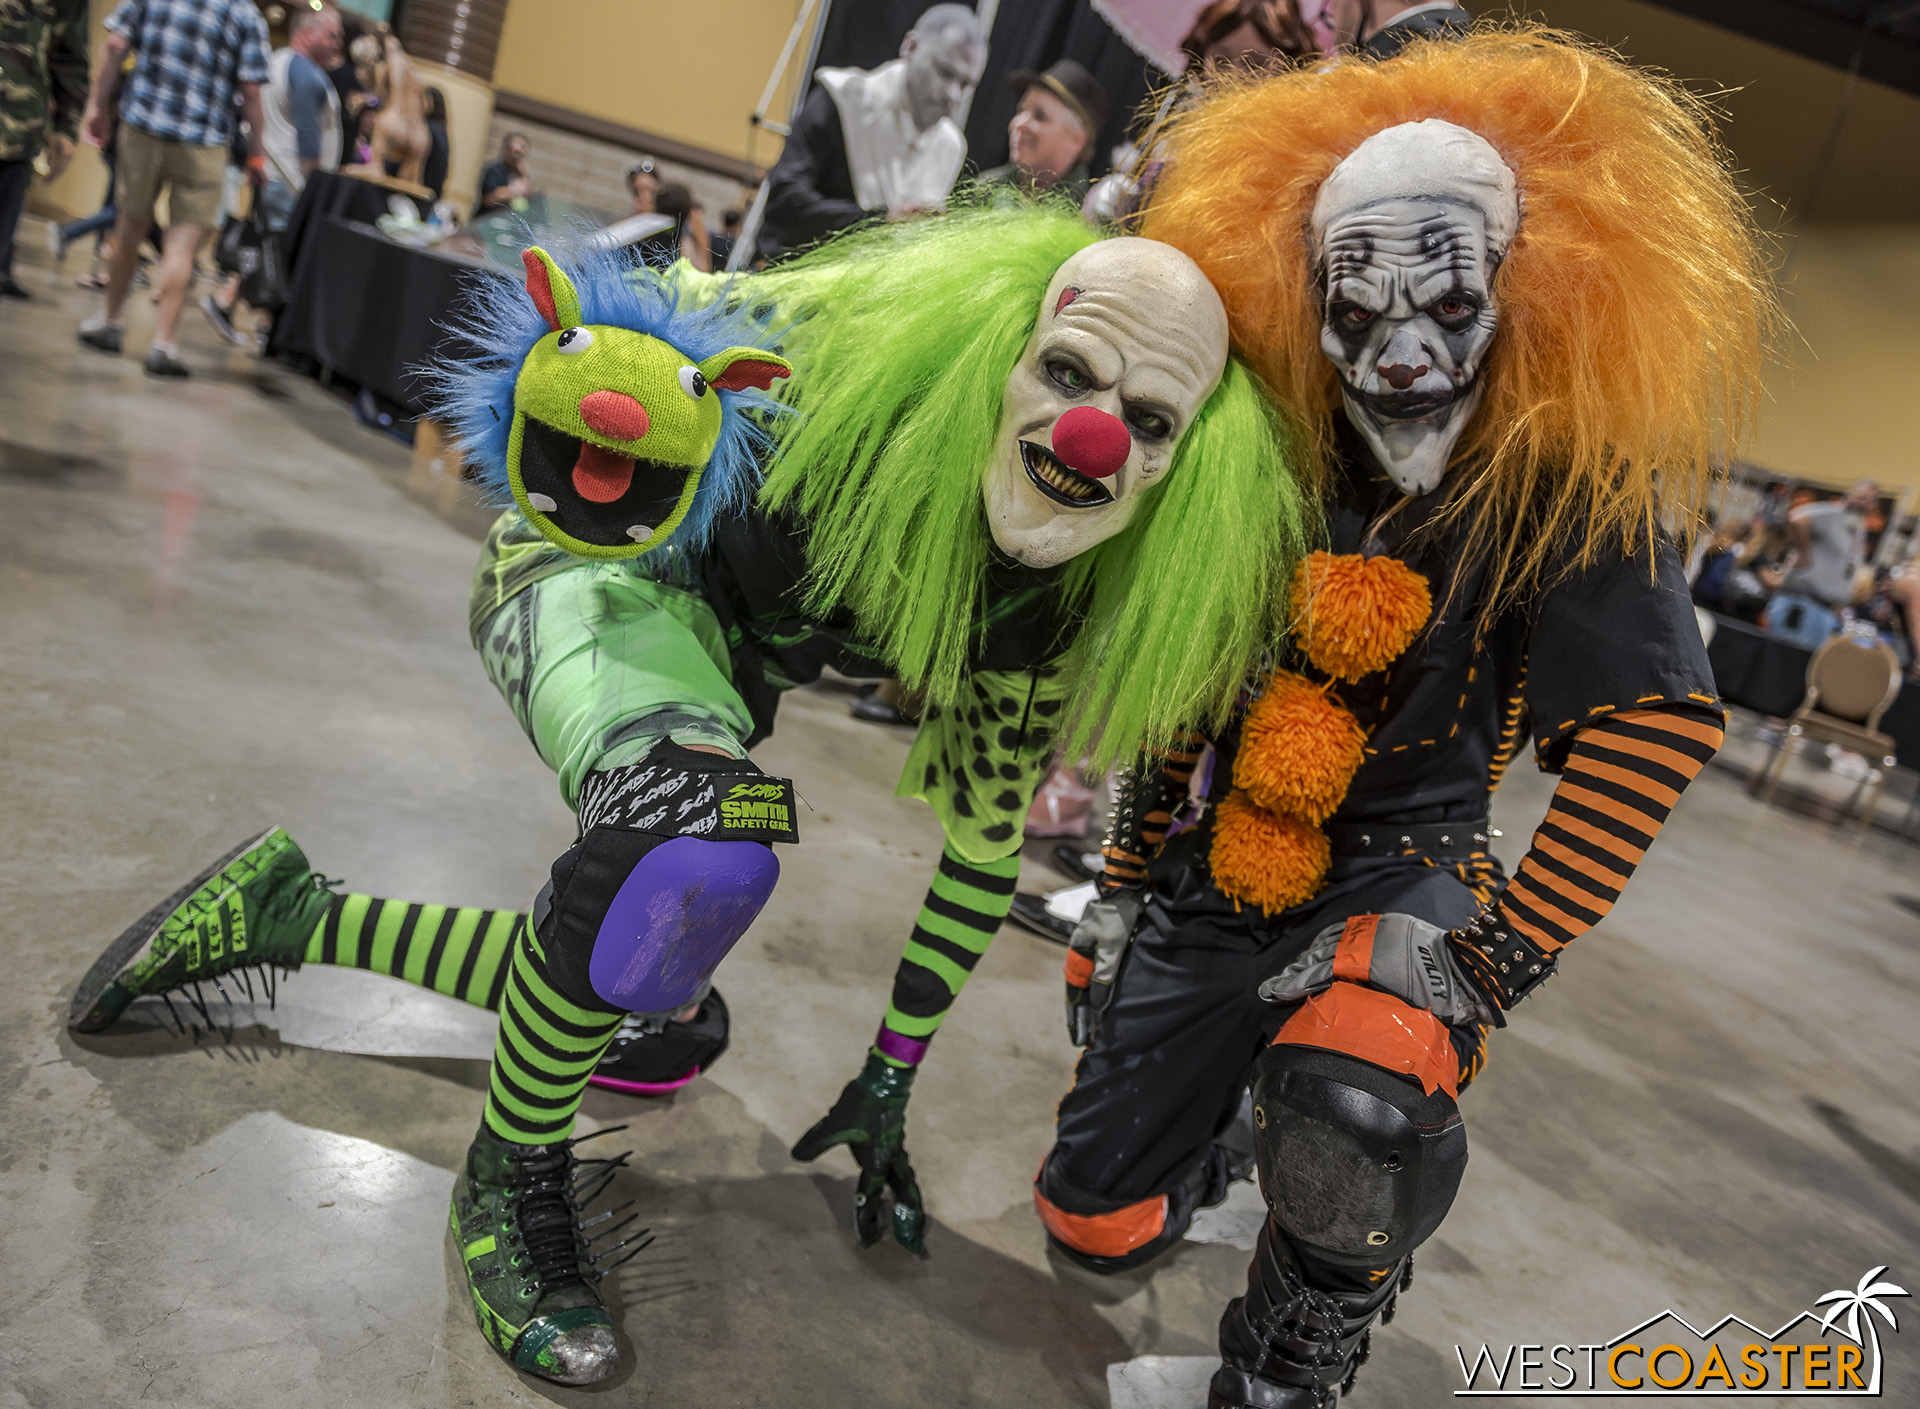 These are most definitely not officially Fright Fest clowns.